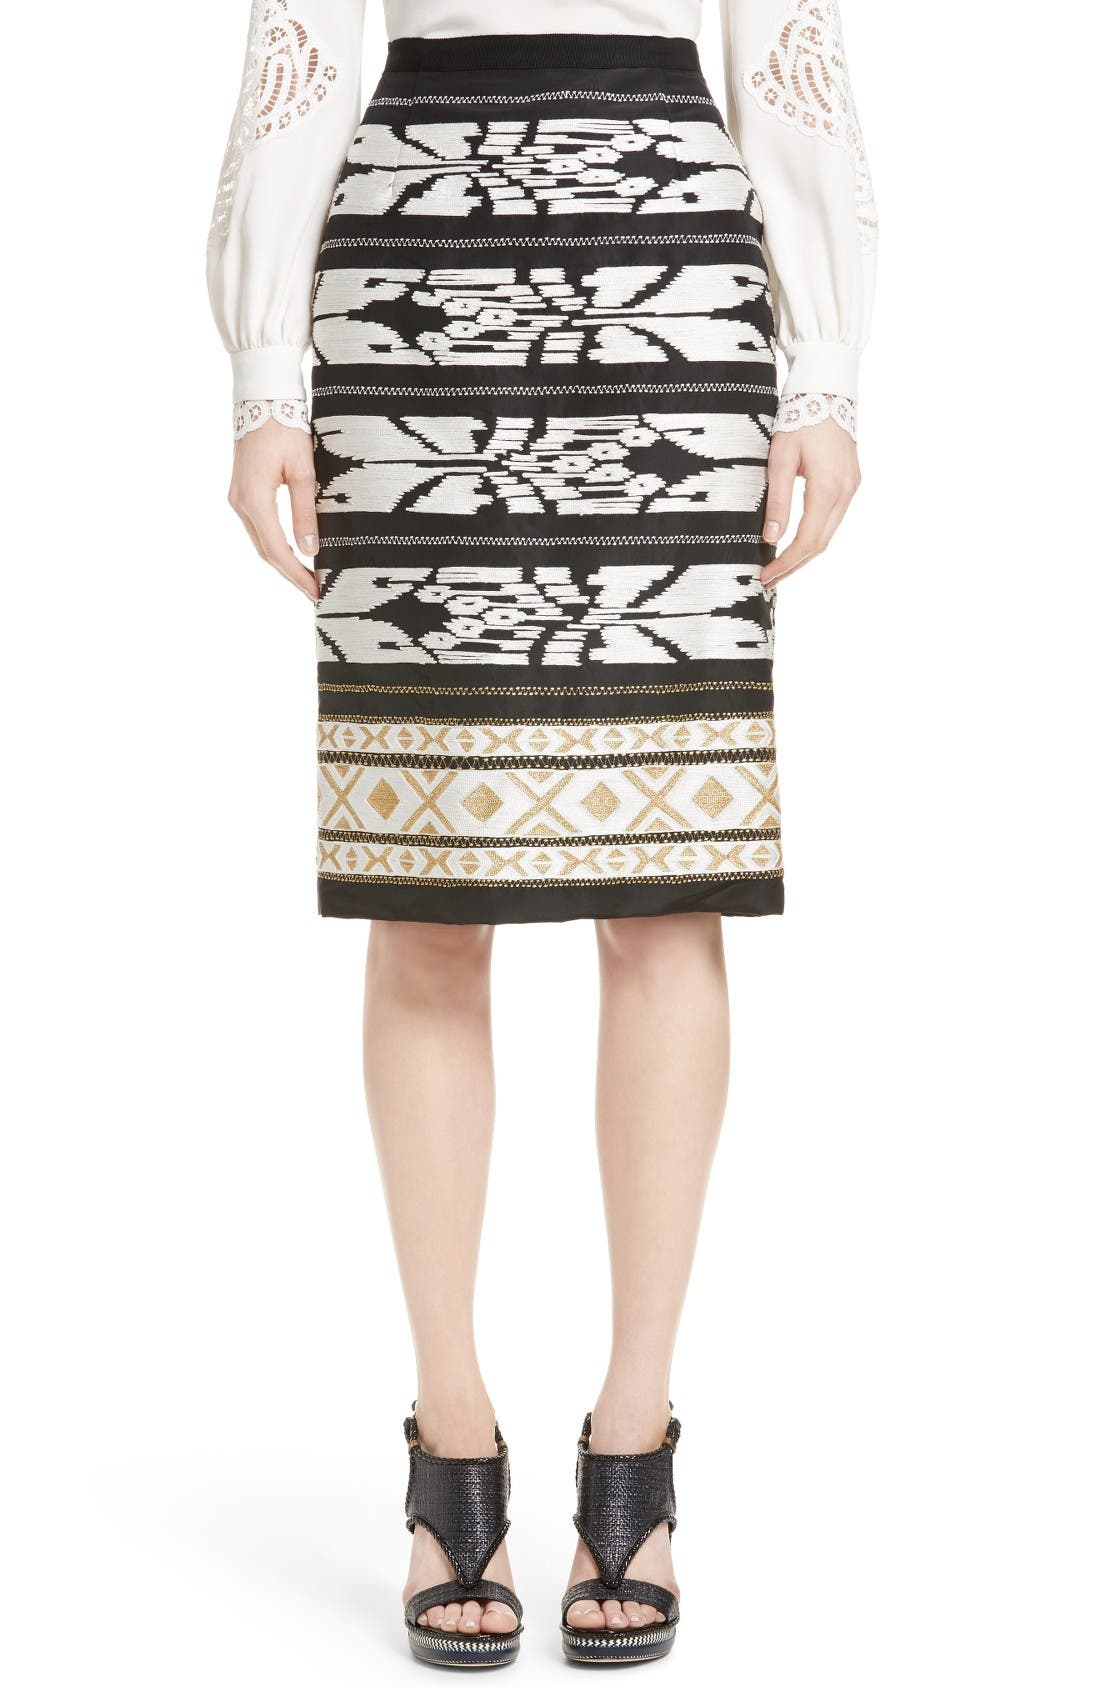 OSCAR DE LA RENTA Ikat Embroidered Pencil Skirt